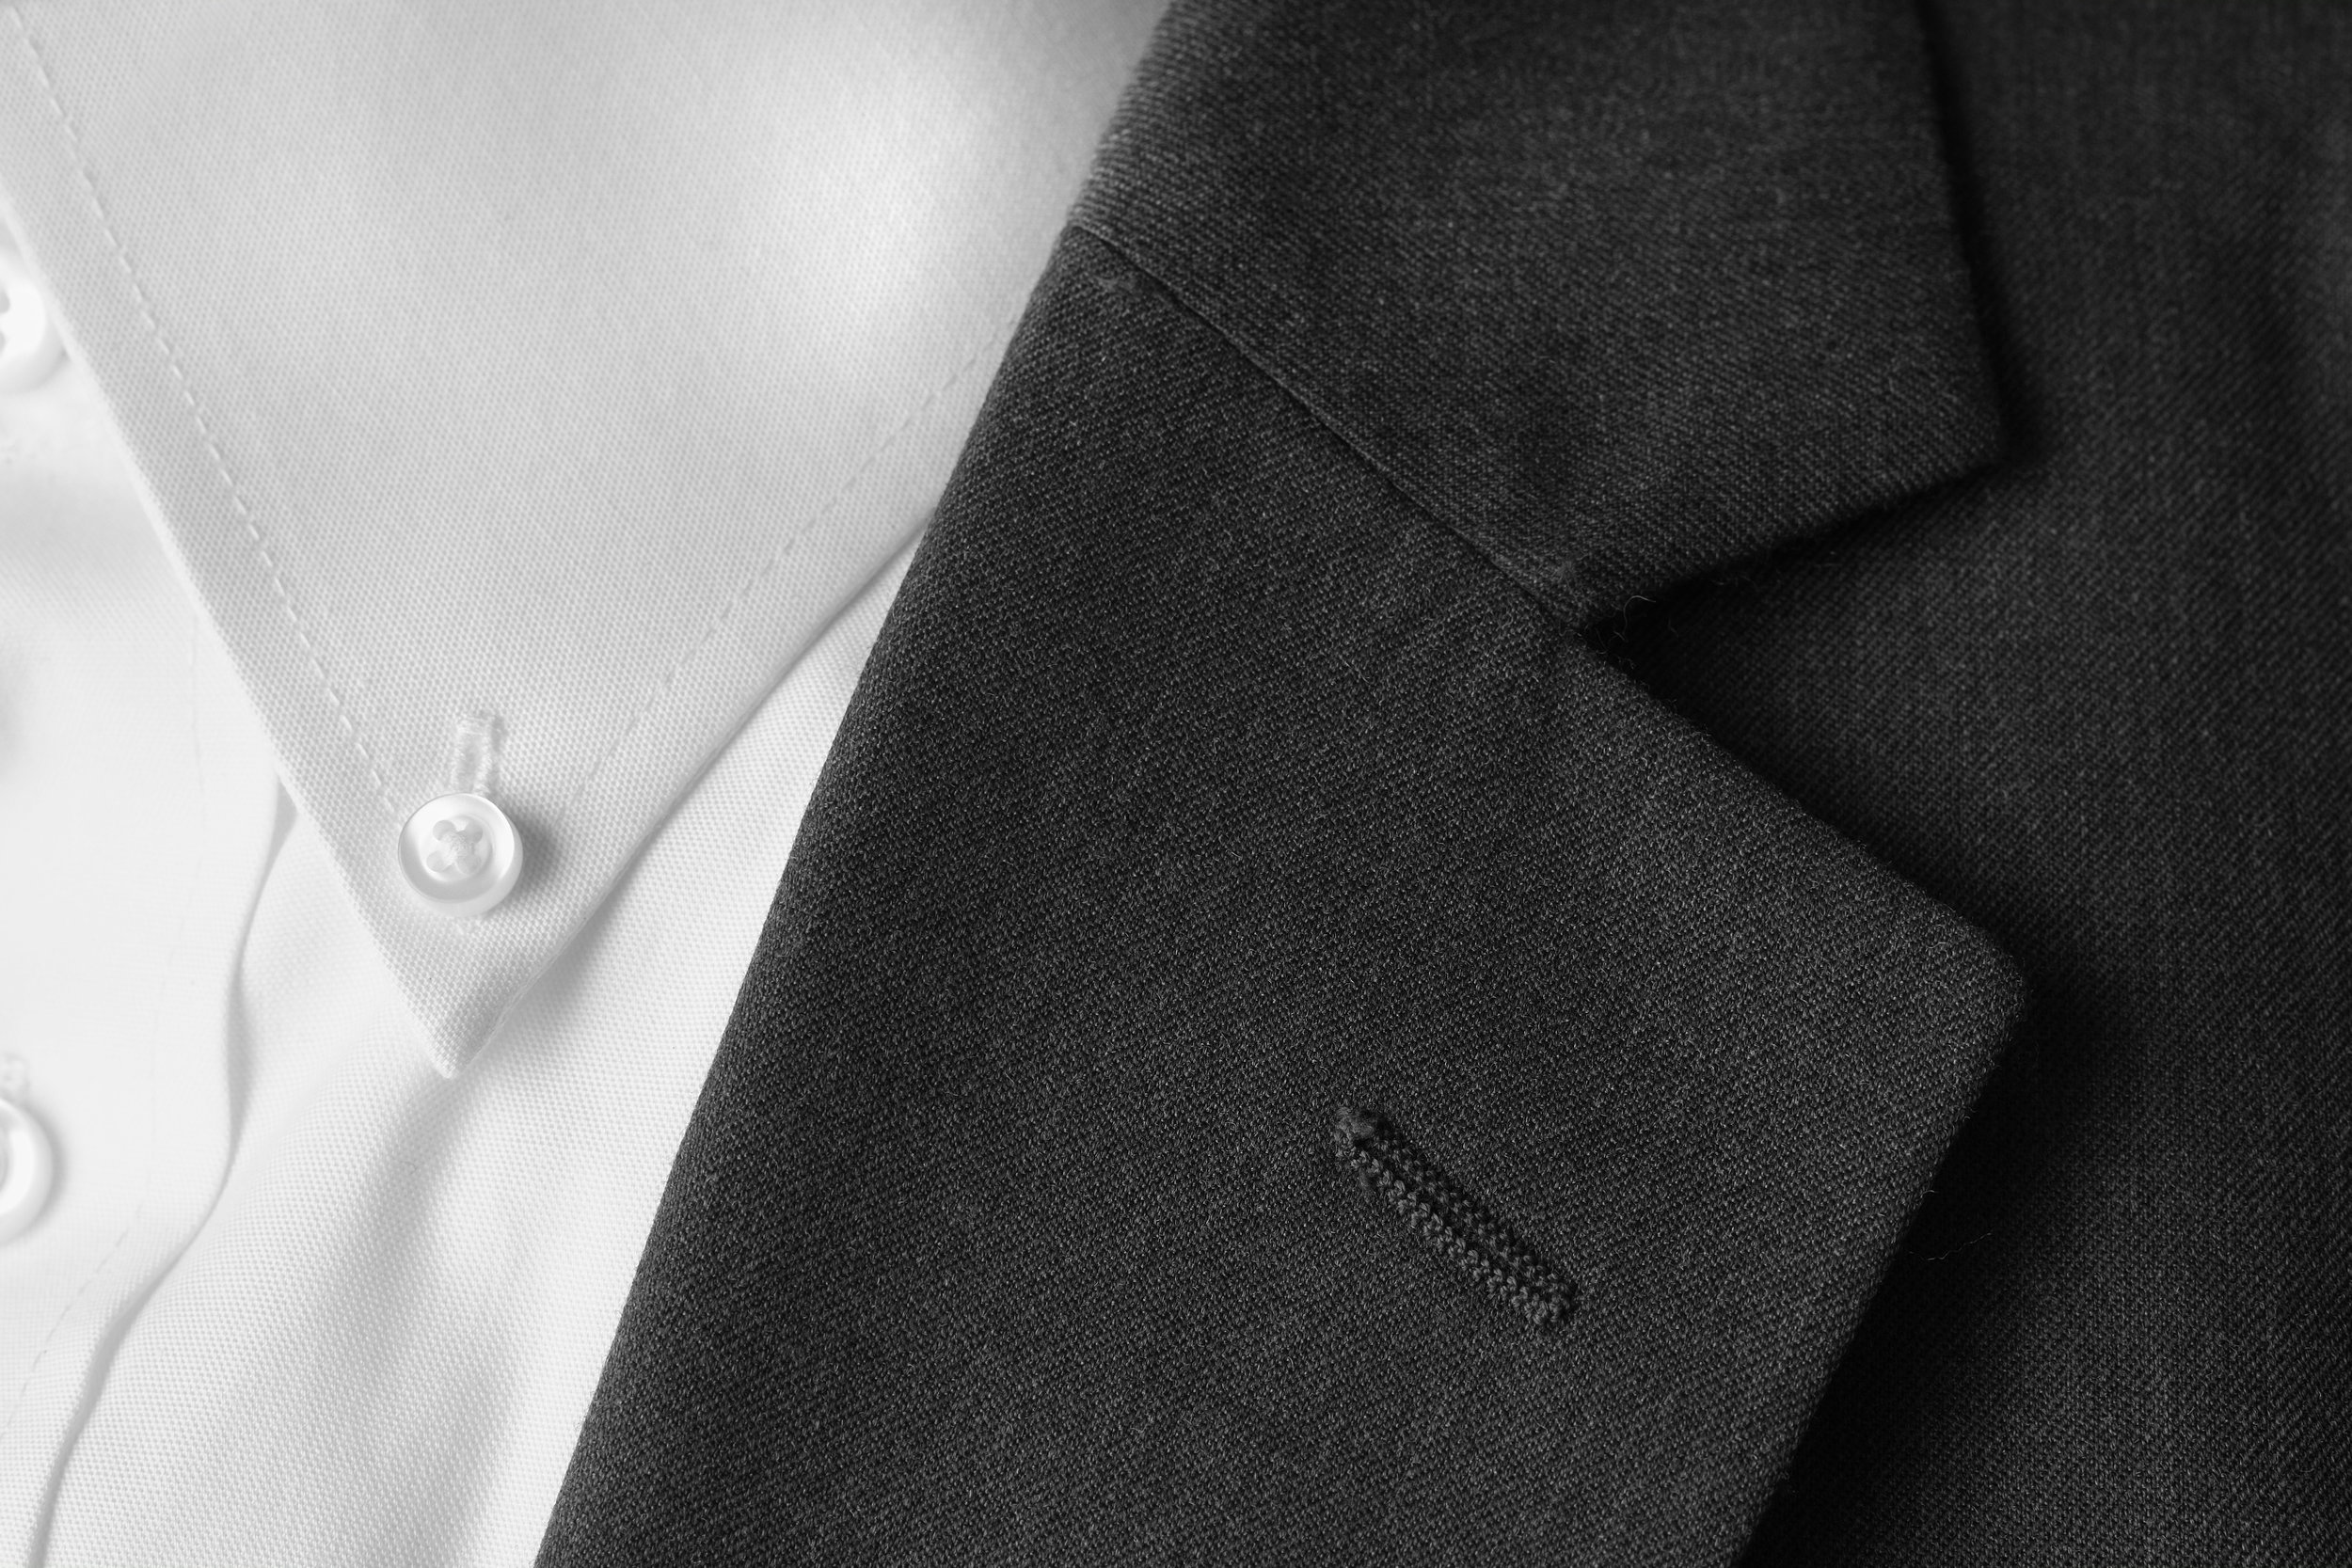 Notch lapels look like a Pacman-shaped mouth between the collar and the jacket flap. The angle is usually between 75 and 90 degrees. It's the most evergreen and classic type of lapel suitable for most body types. If you're only going to have one coat, this is the lapel you want to go for. Its versatility allows you to wear it to both casual and formal events, from job interviews to weddings. The notch is usually what you see with sports jackets as well.